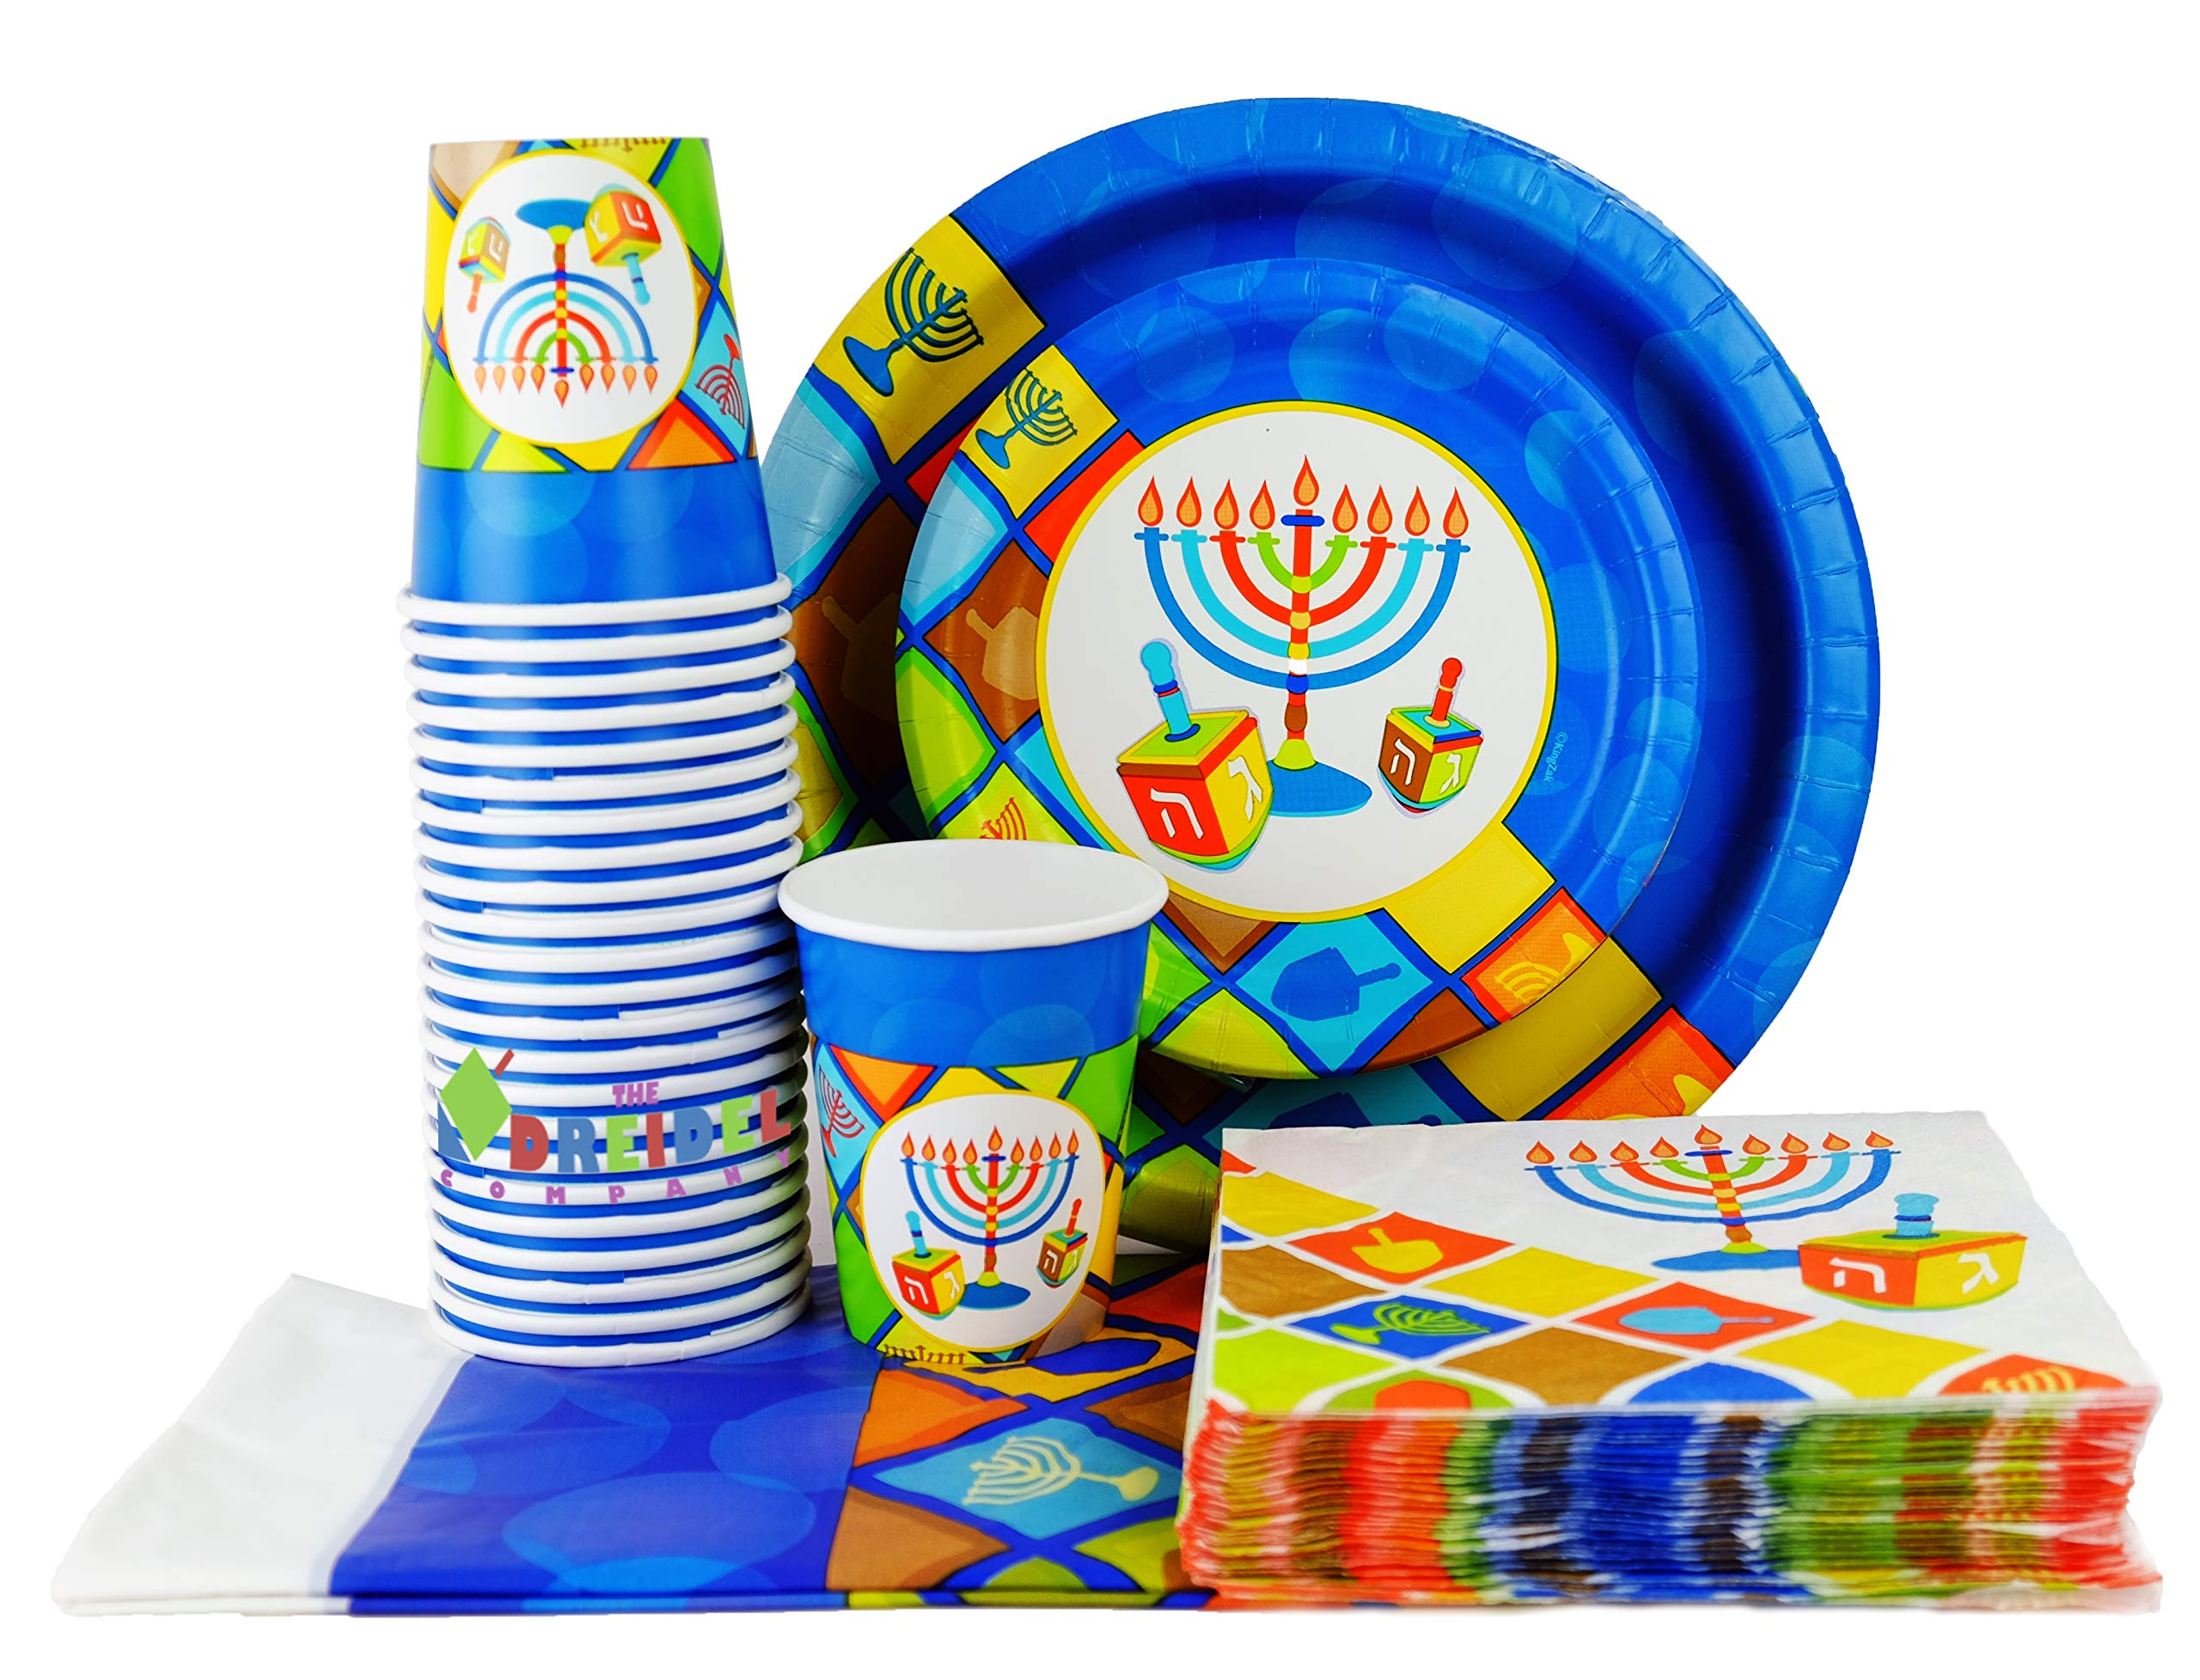 Happy Hanukkah Illumination Design - Paper Goods Party Set - 7'' and 10'' Plates, Cups, Napkins and Table Cover